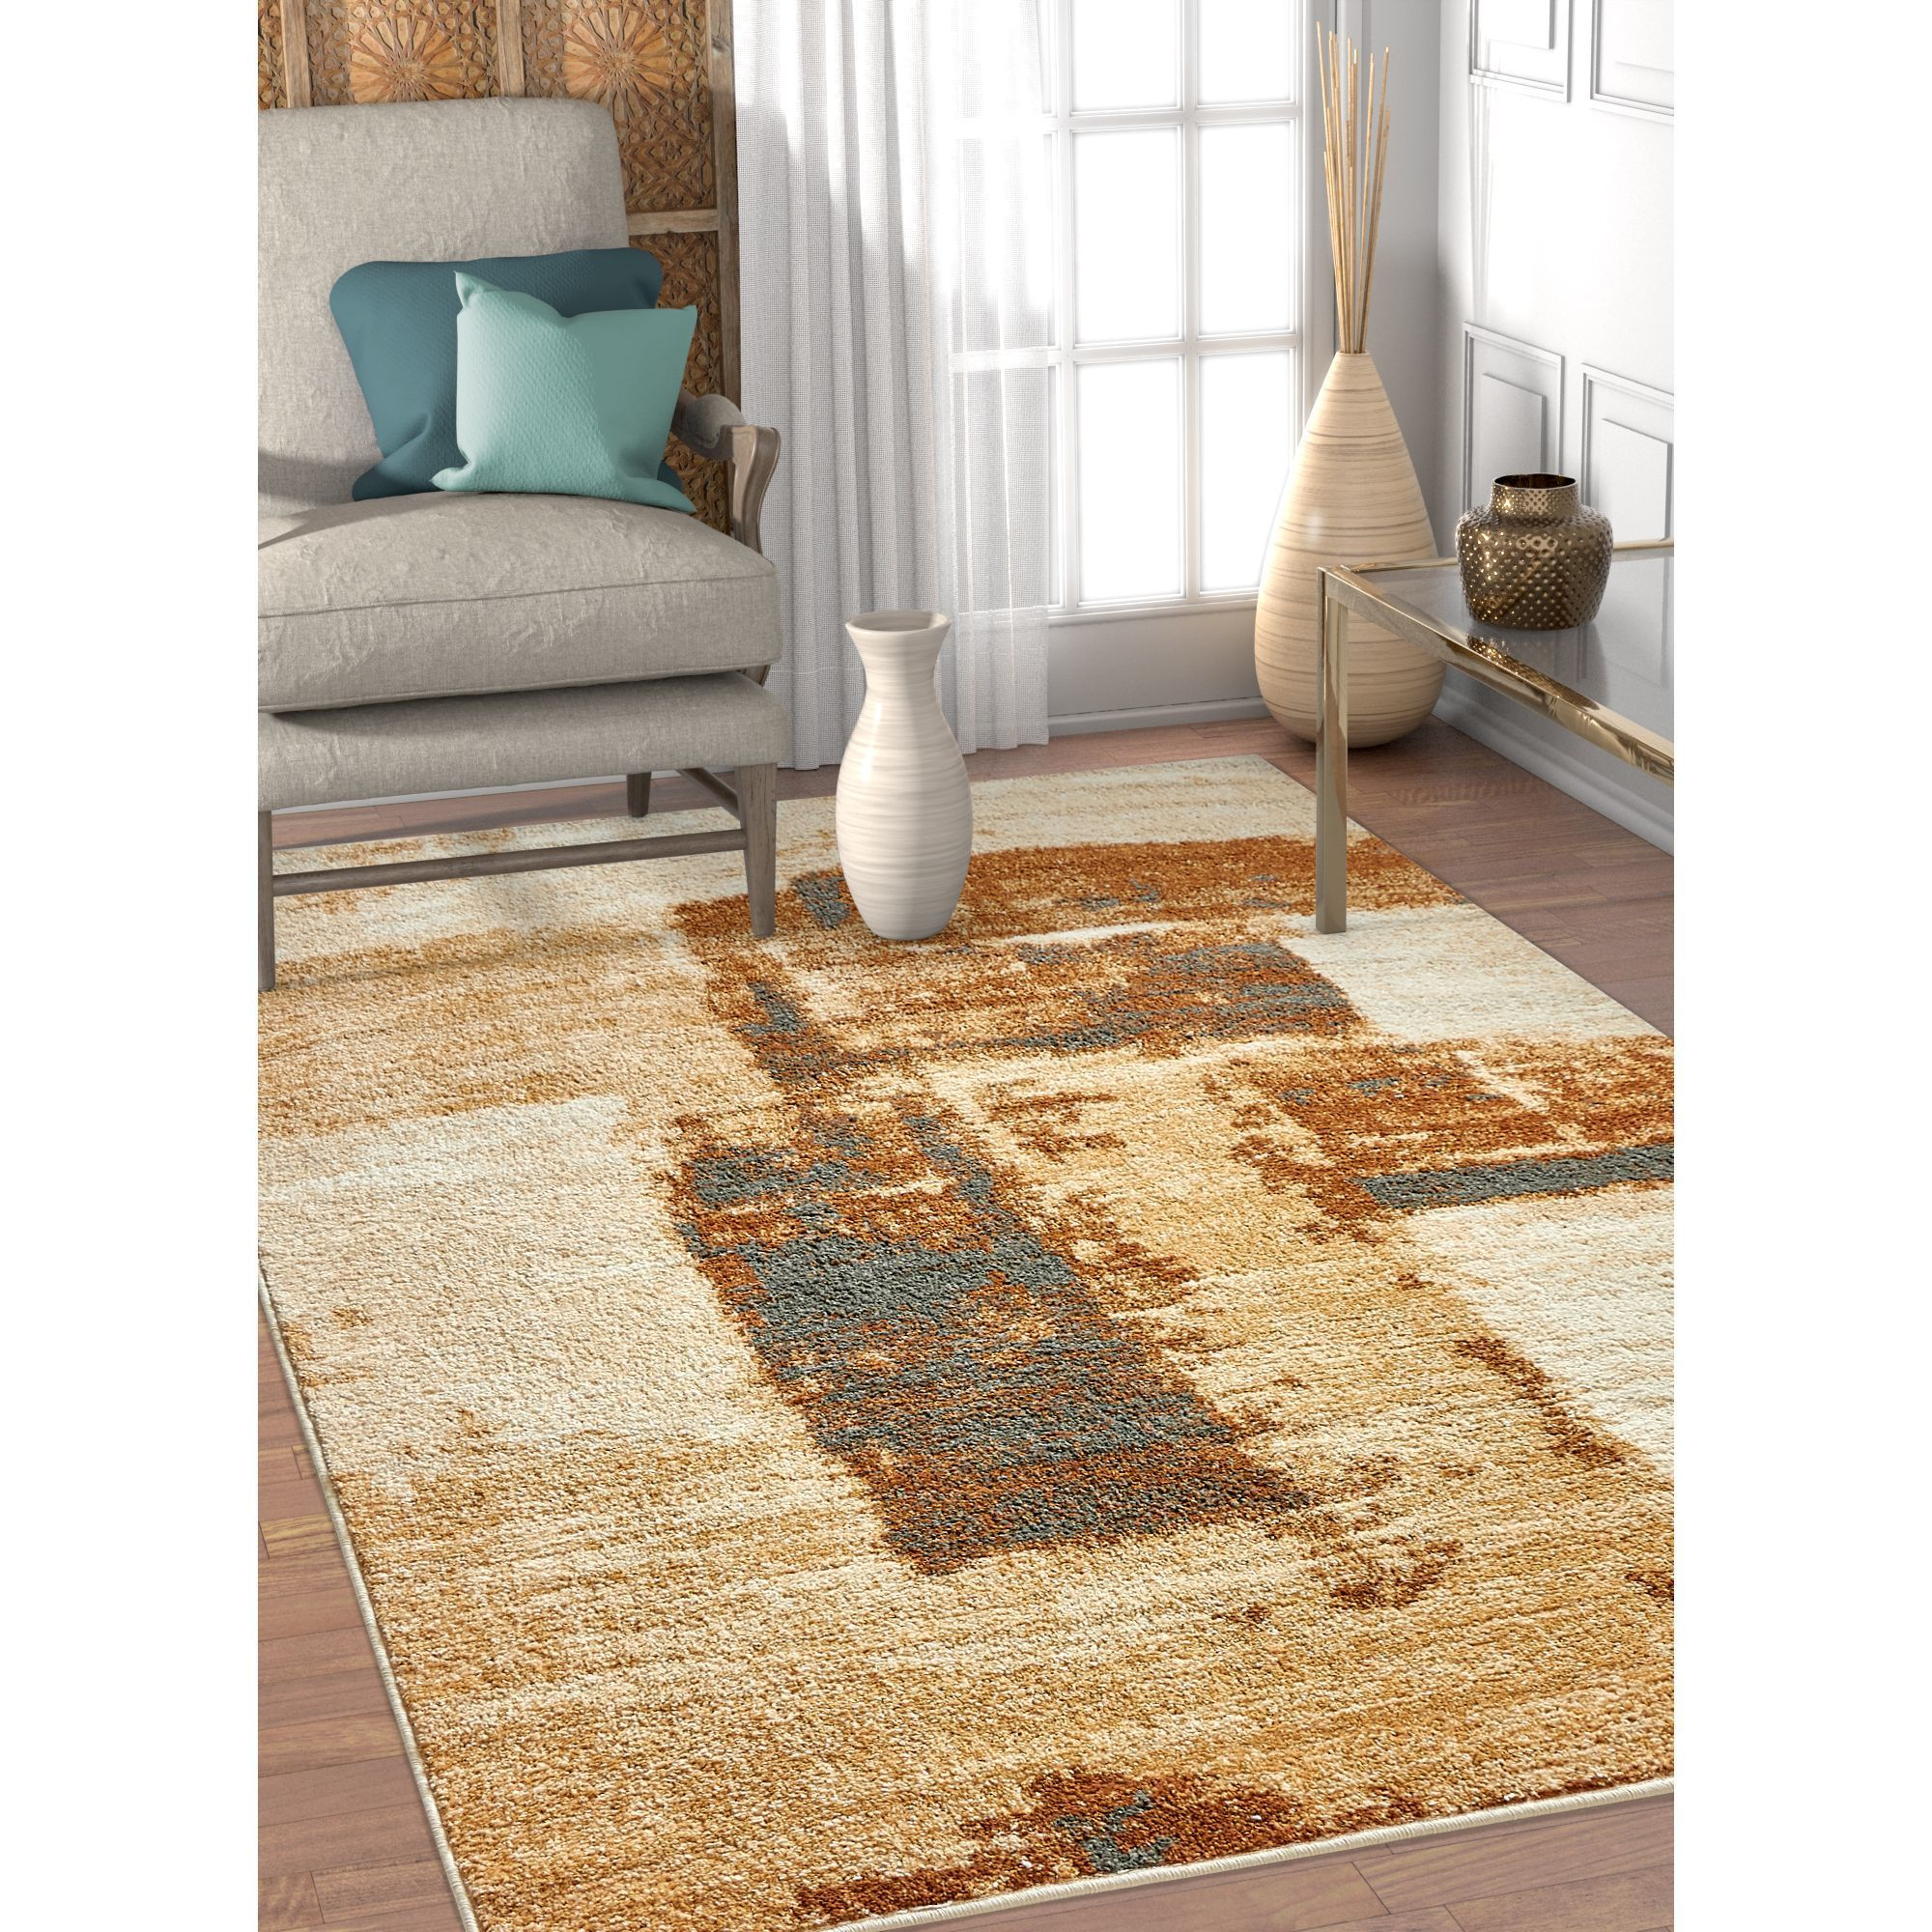 Well Woven Melbourne Modern Brush Strokes Brown Beige Area Rug 3 X 5